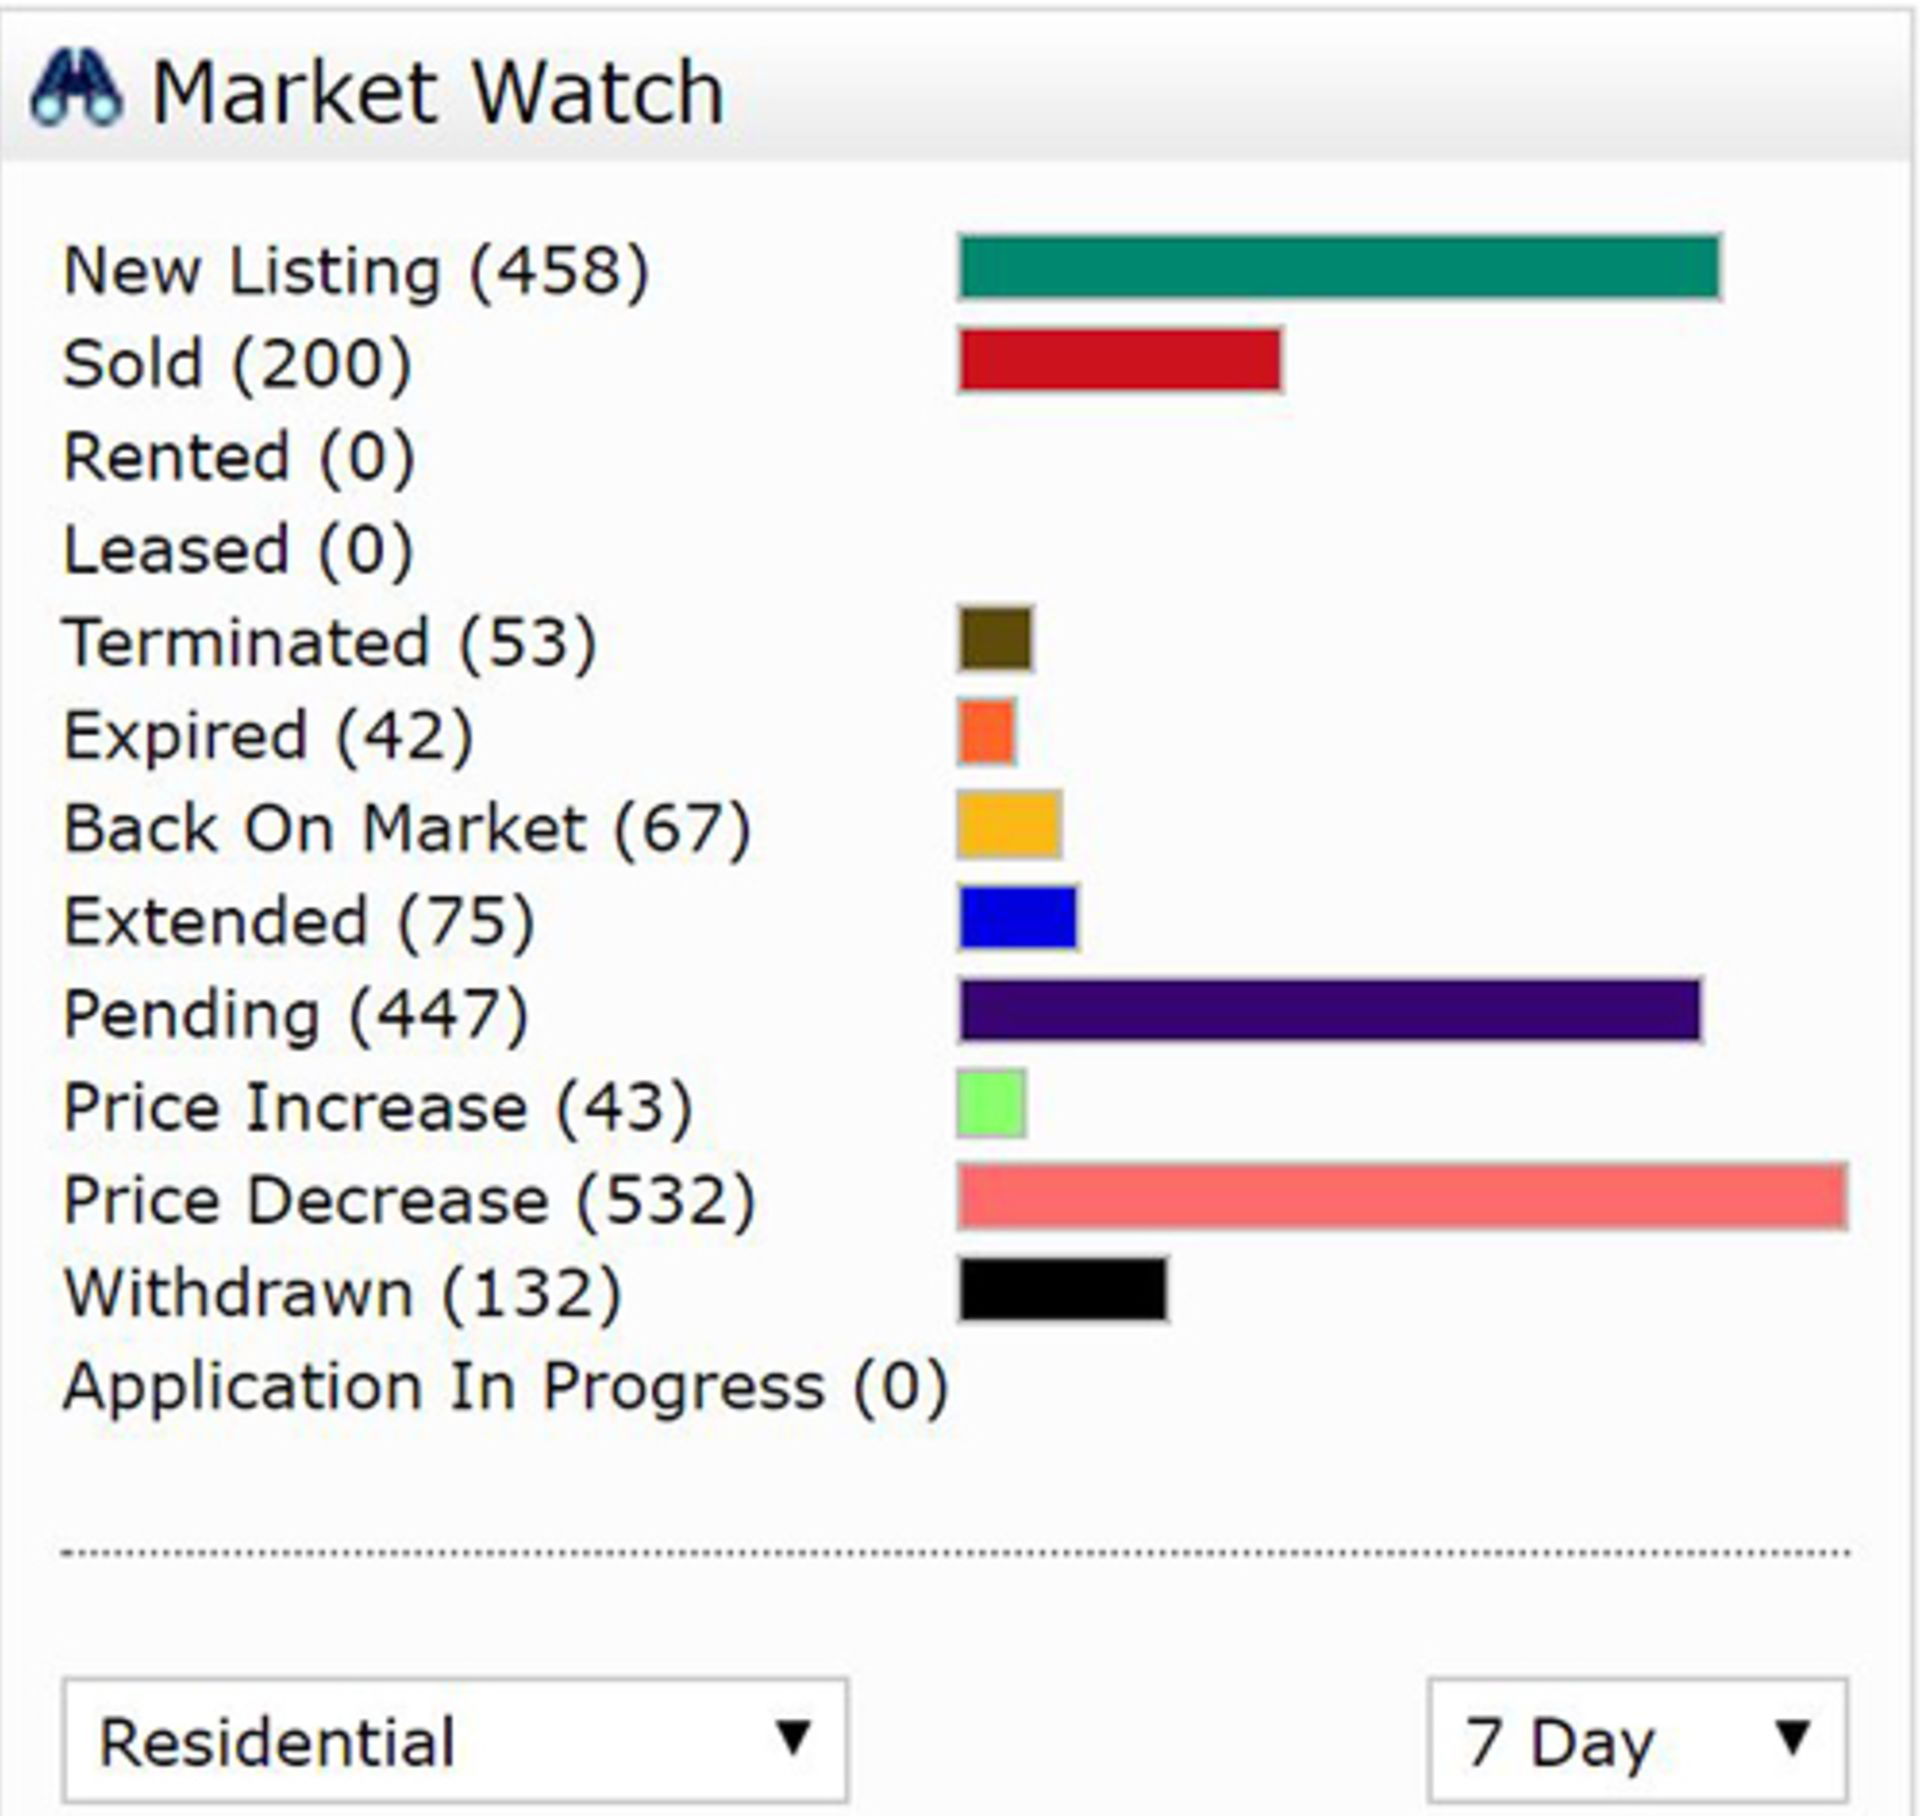 UPDATED: MARKET WATCH REPORTS